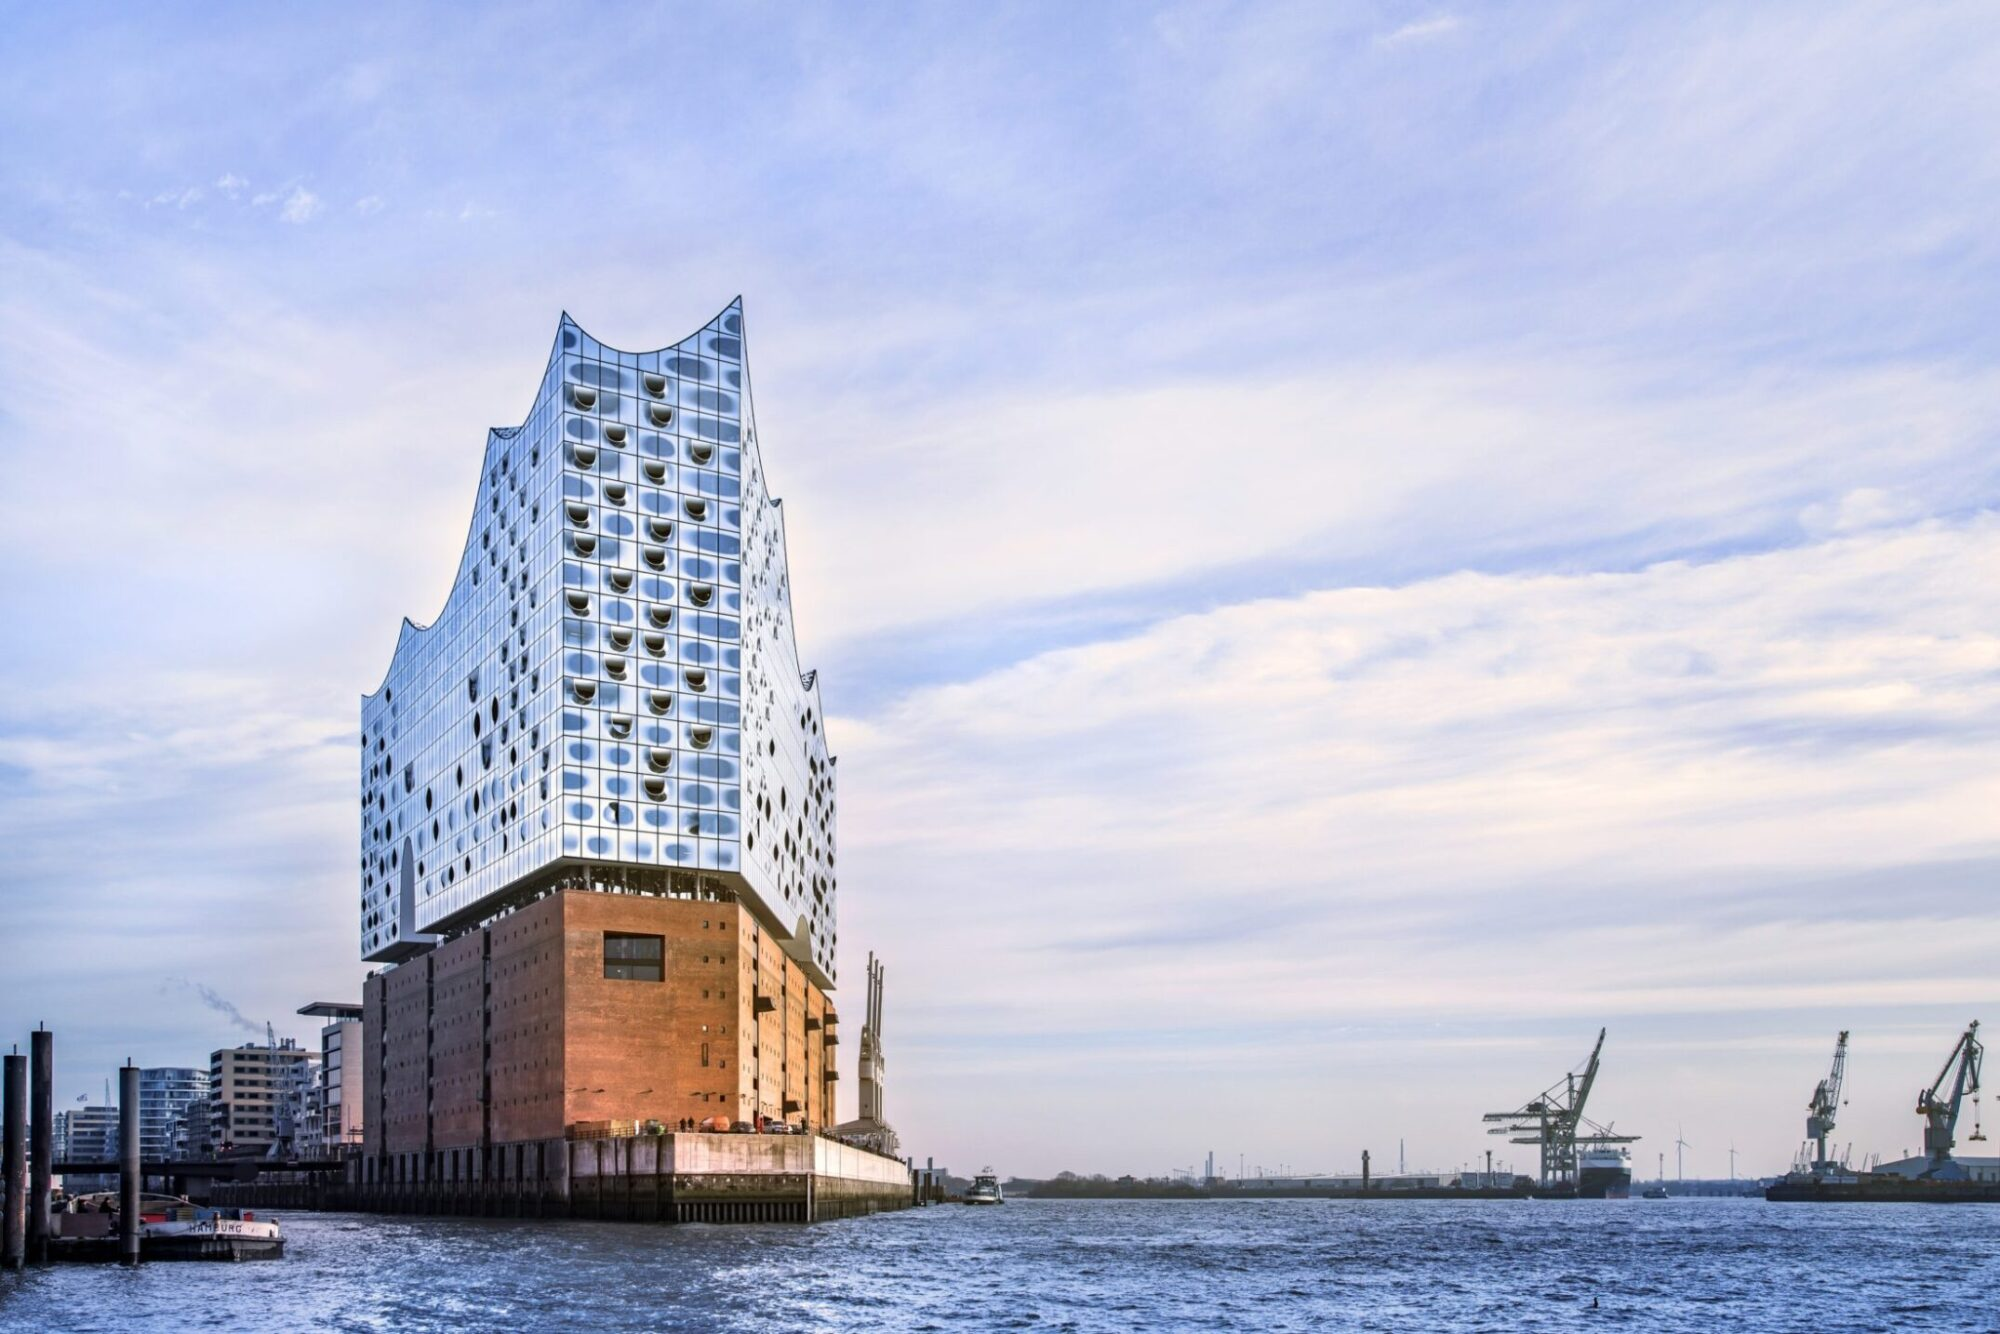 Elbphilharmonie / Photo: Thies Ratzke